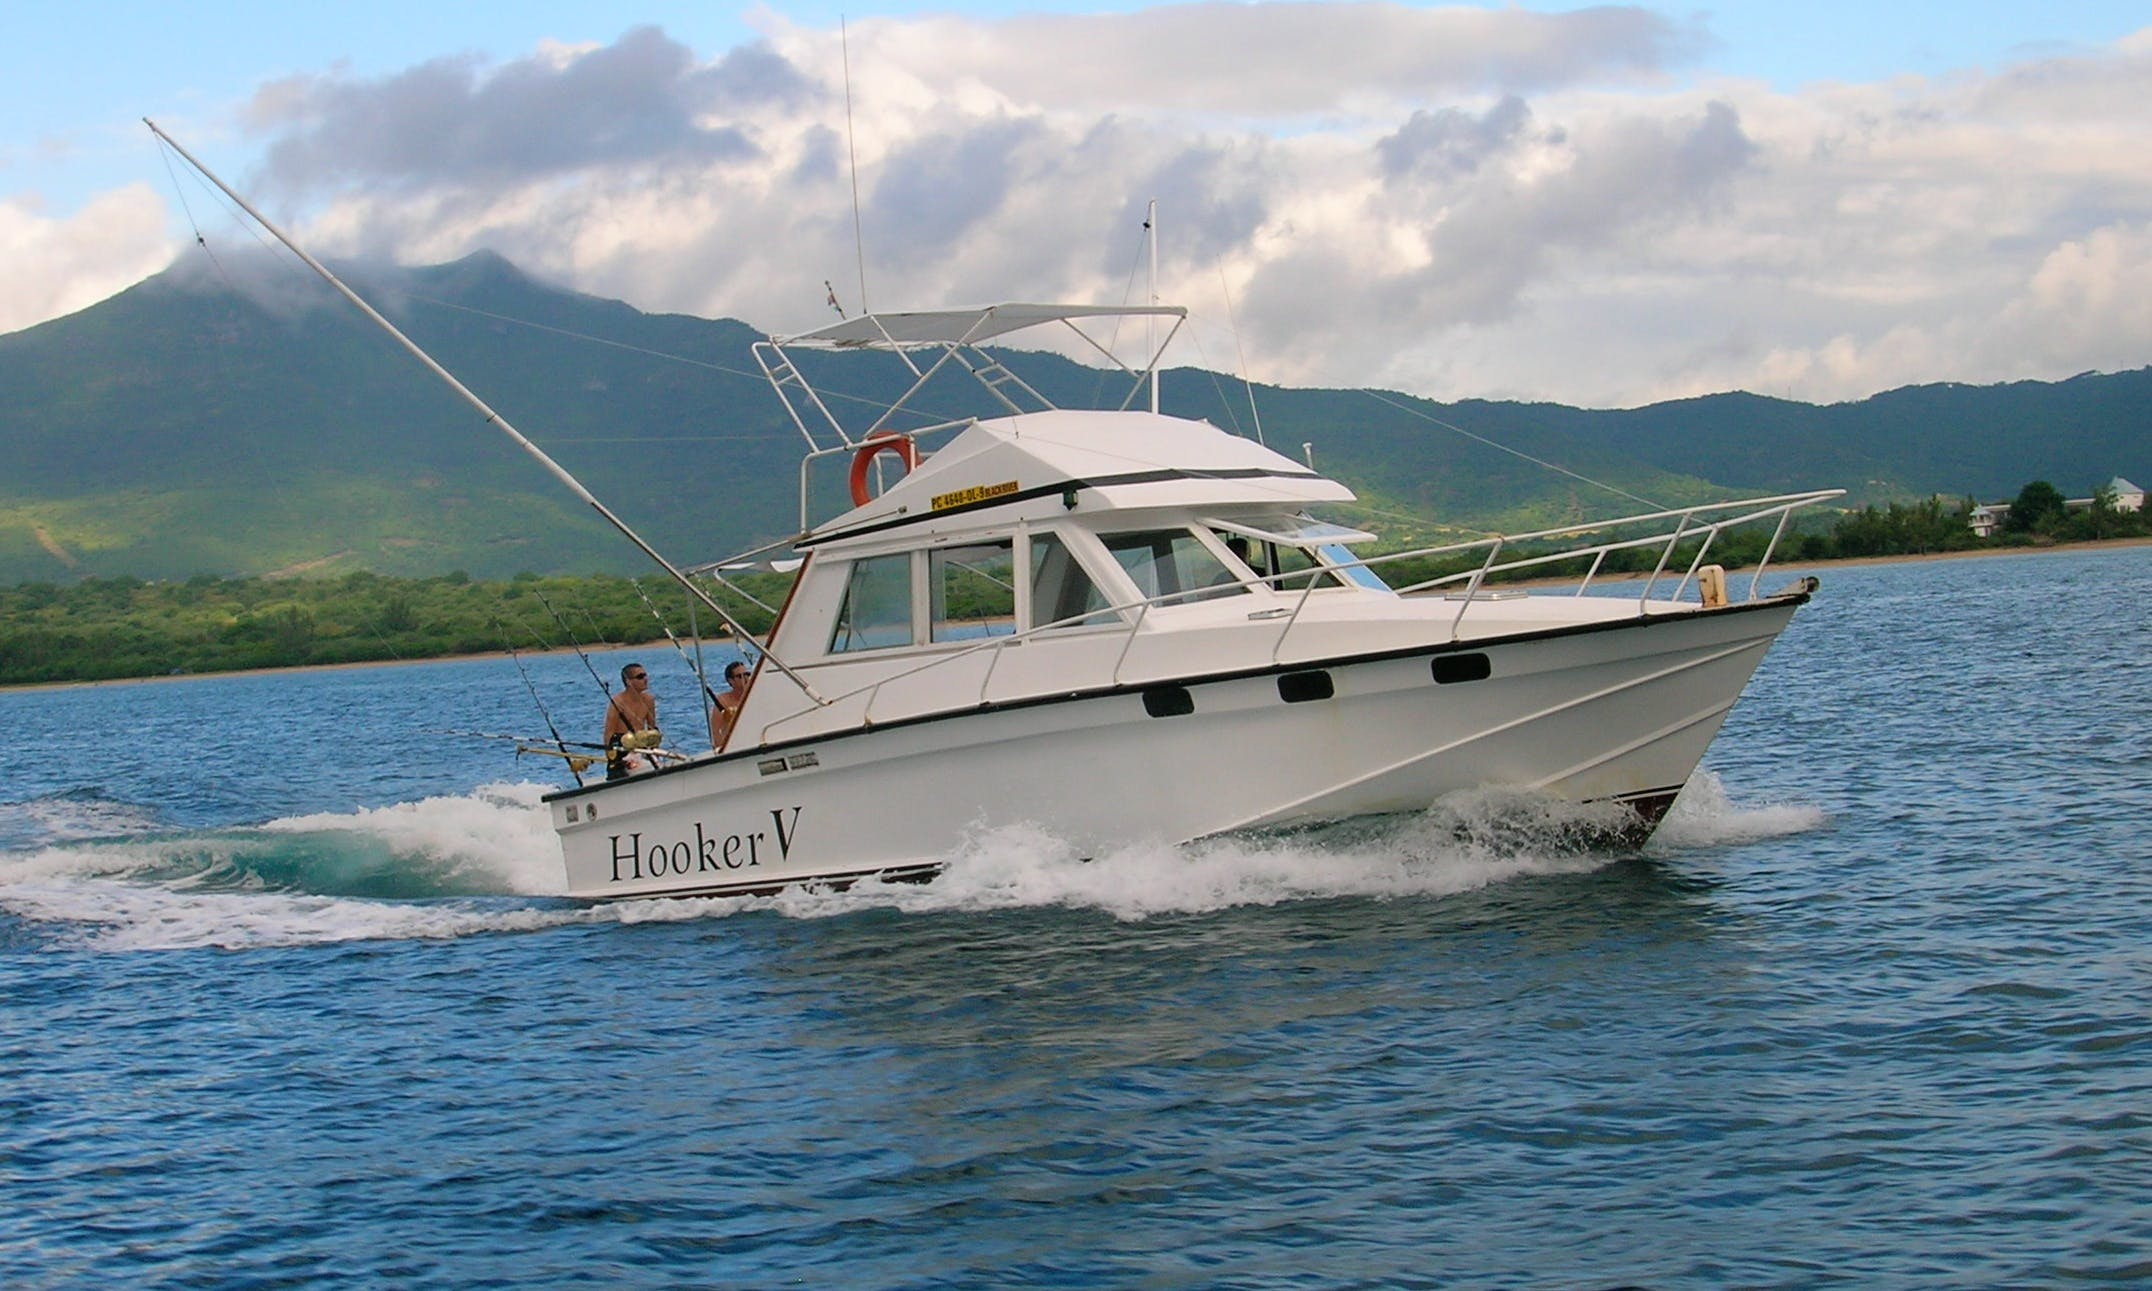 """Come Fish on """"Hooker V"""" From Tamarin Beach, Mauritius!"""